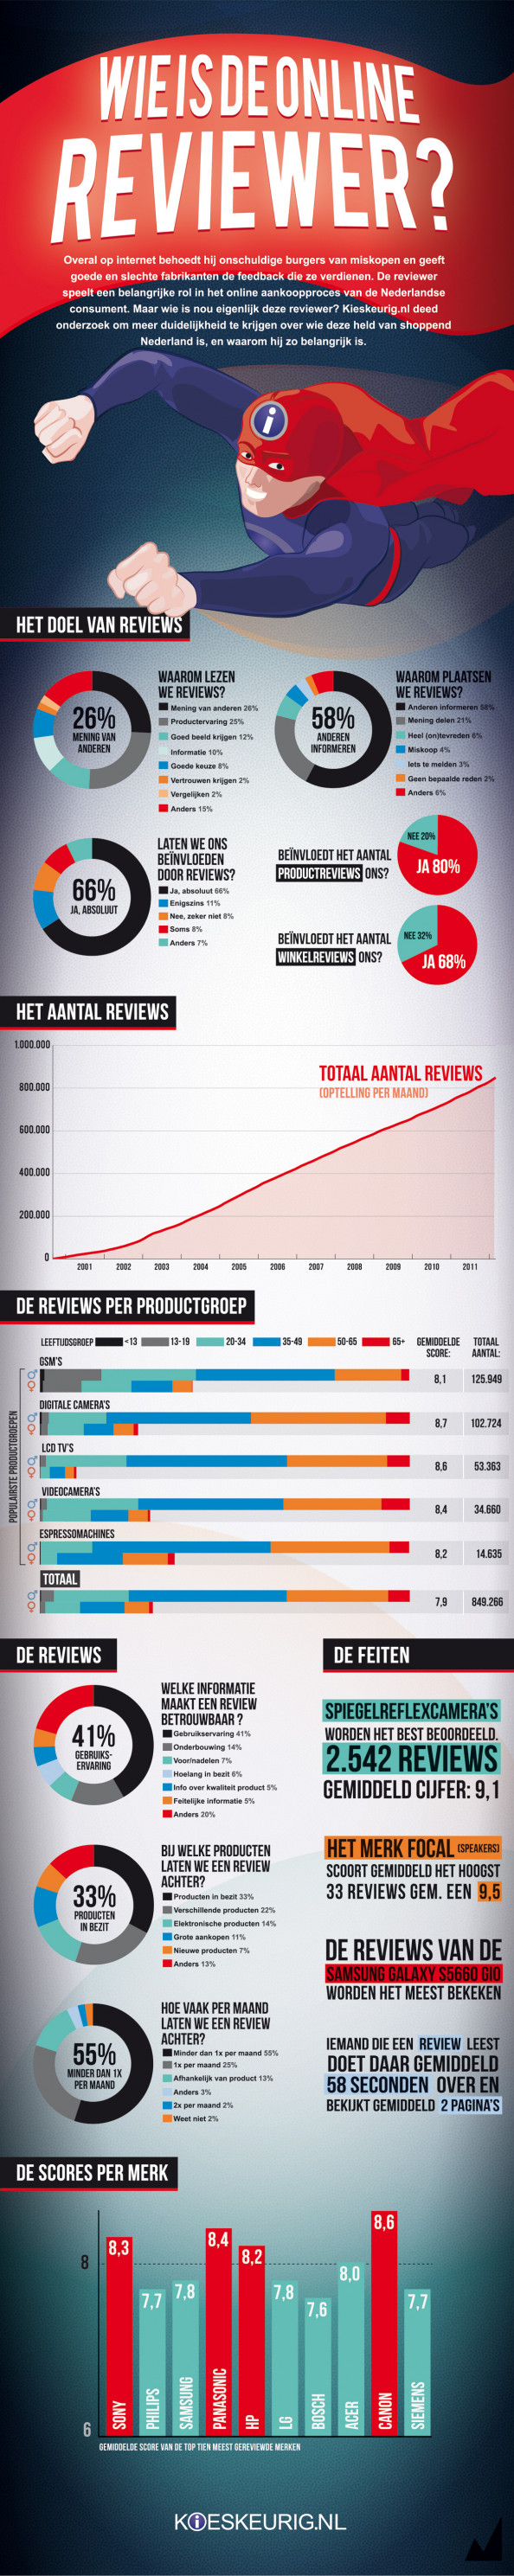 Wie is de online reviewer? Infographic